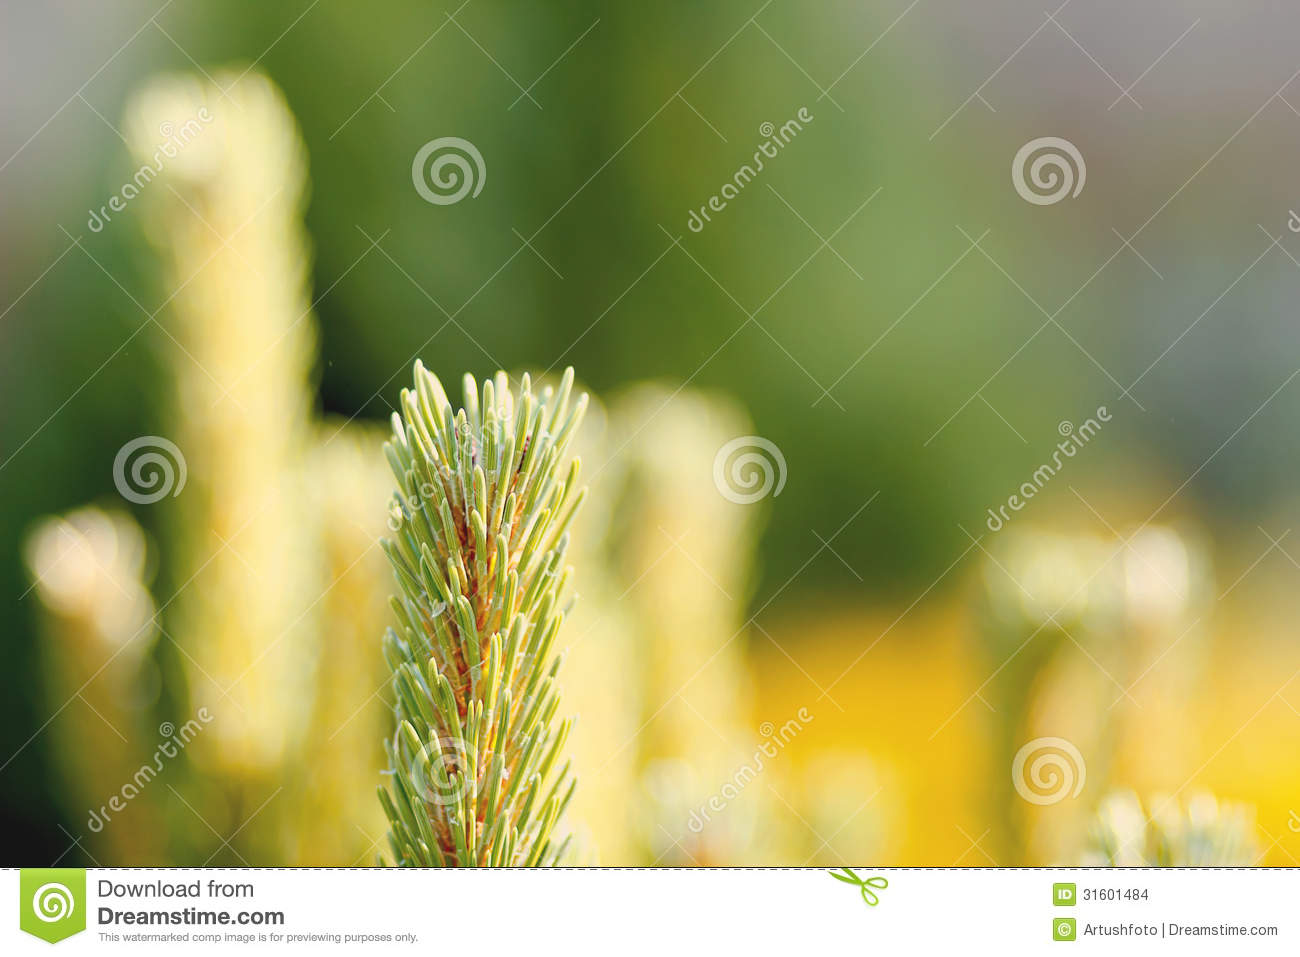 Conifer with shallow focus for background